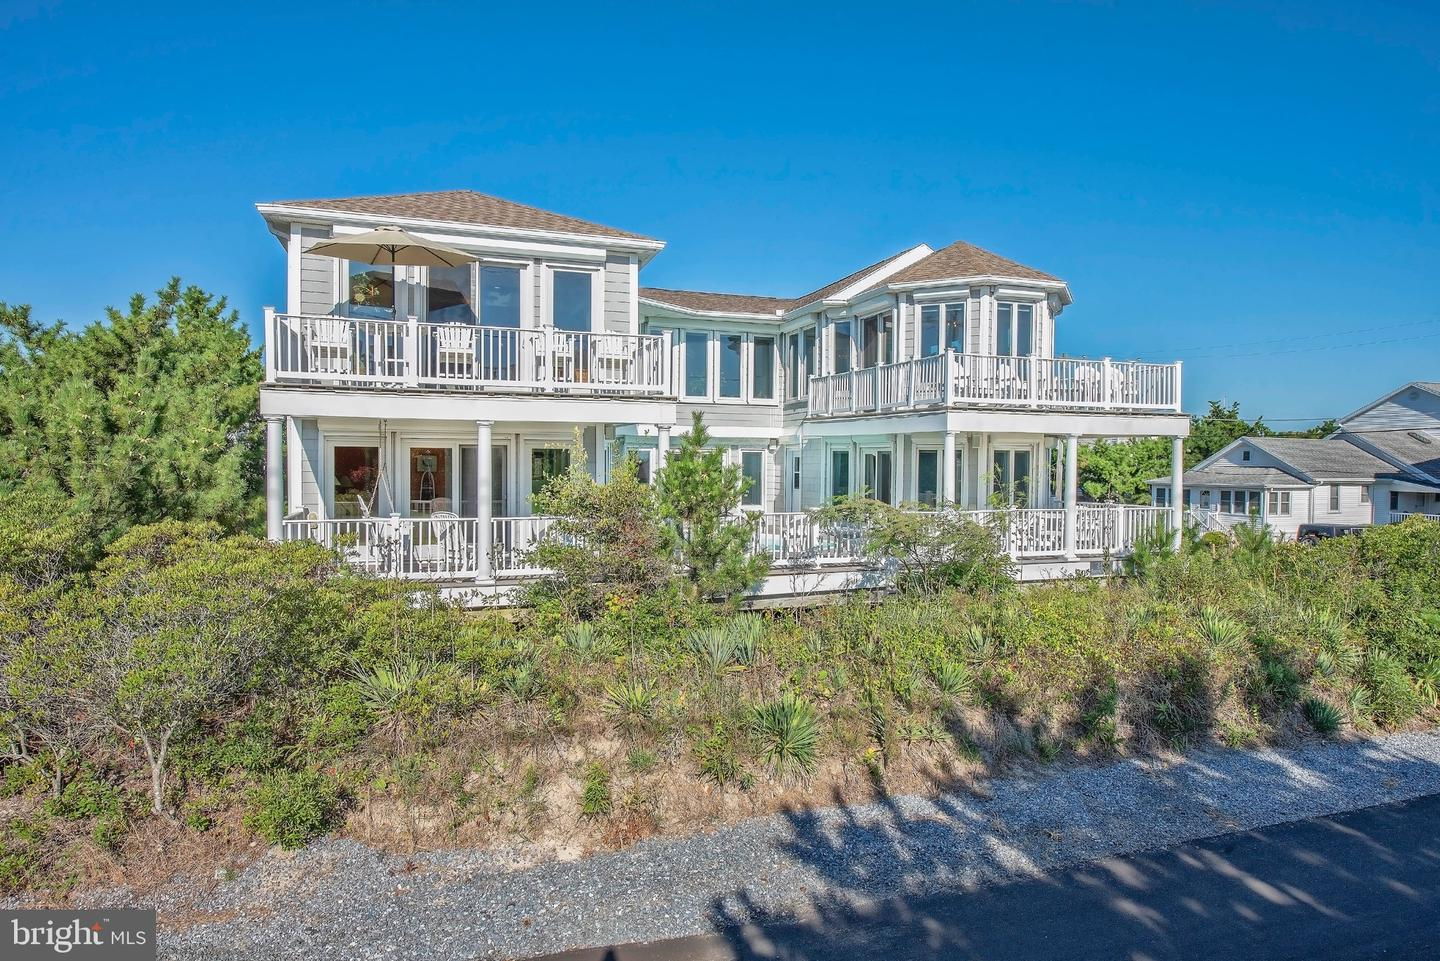 DESU147280-302007867517-2019-08-31-13-42-10 810 Bunting Ave | Fenwick Island, DE Real Estate For Sale | MLS# Desu147280  - 1st Choice Properties